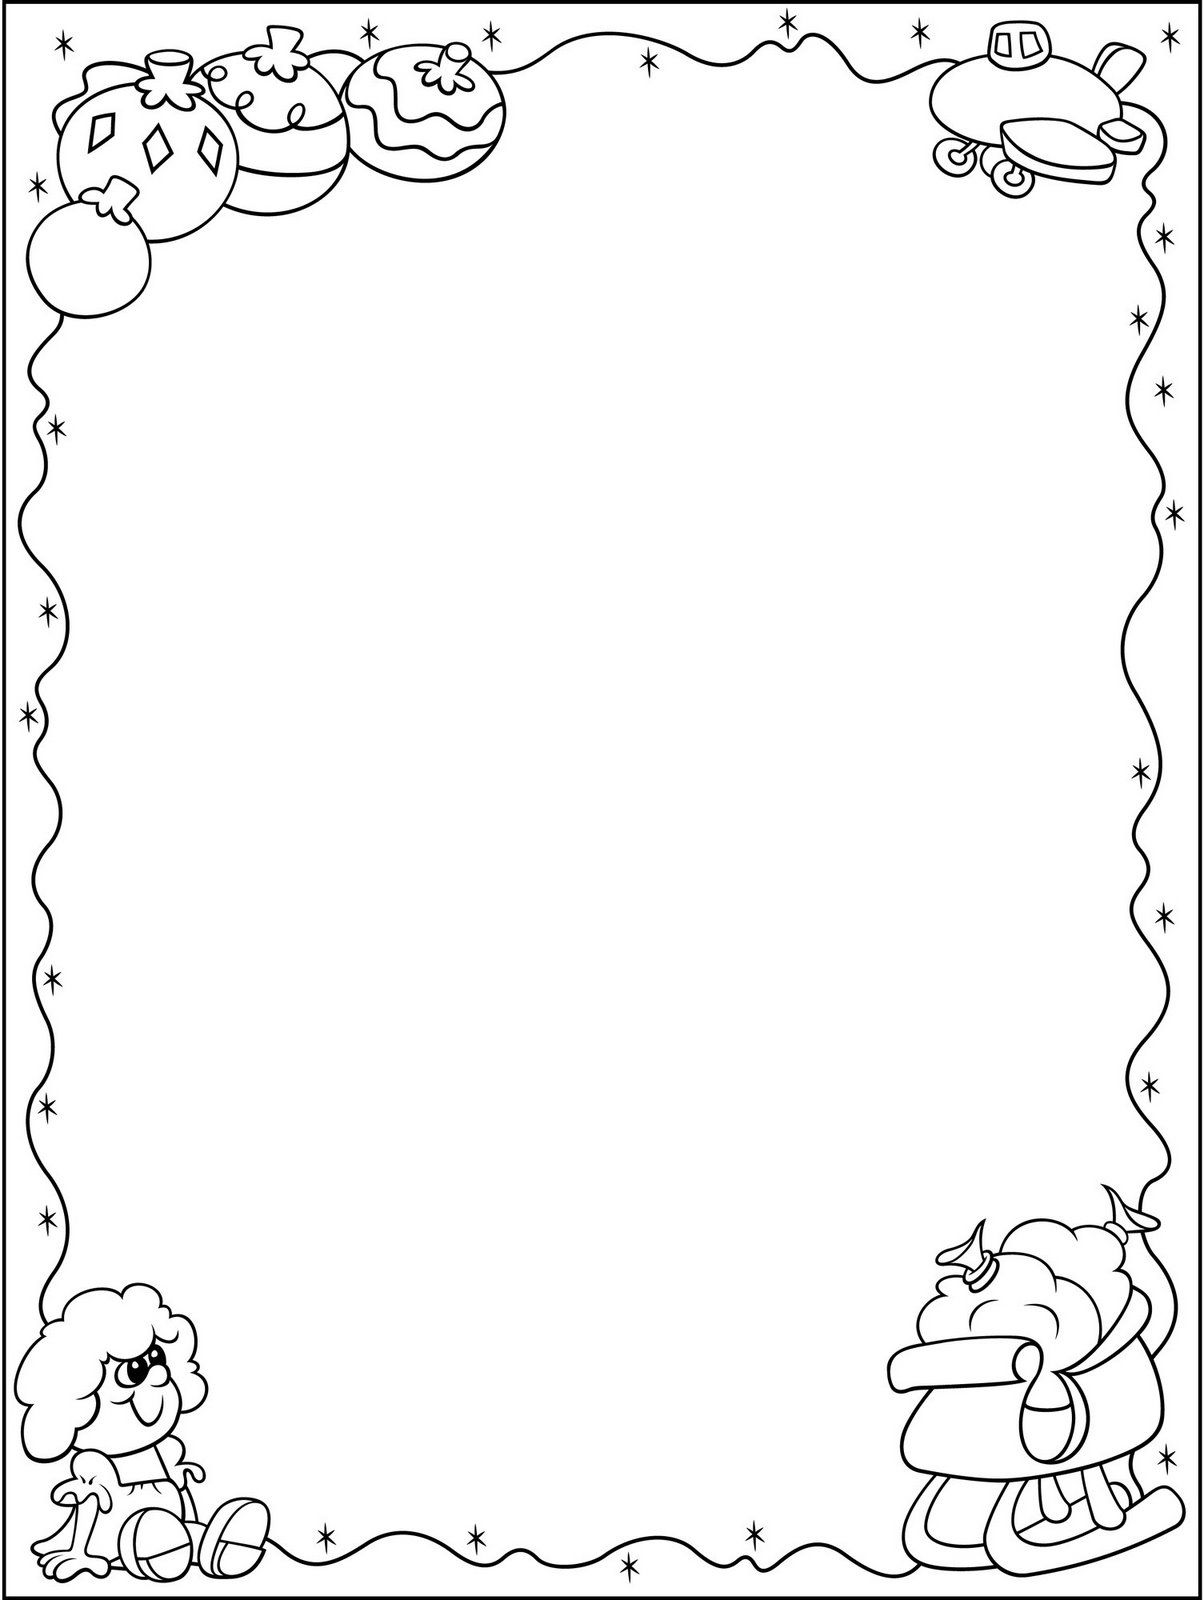 blackline christmas coloring pages - photo#30